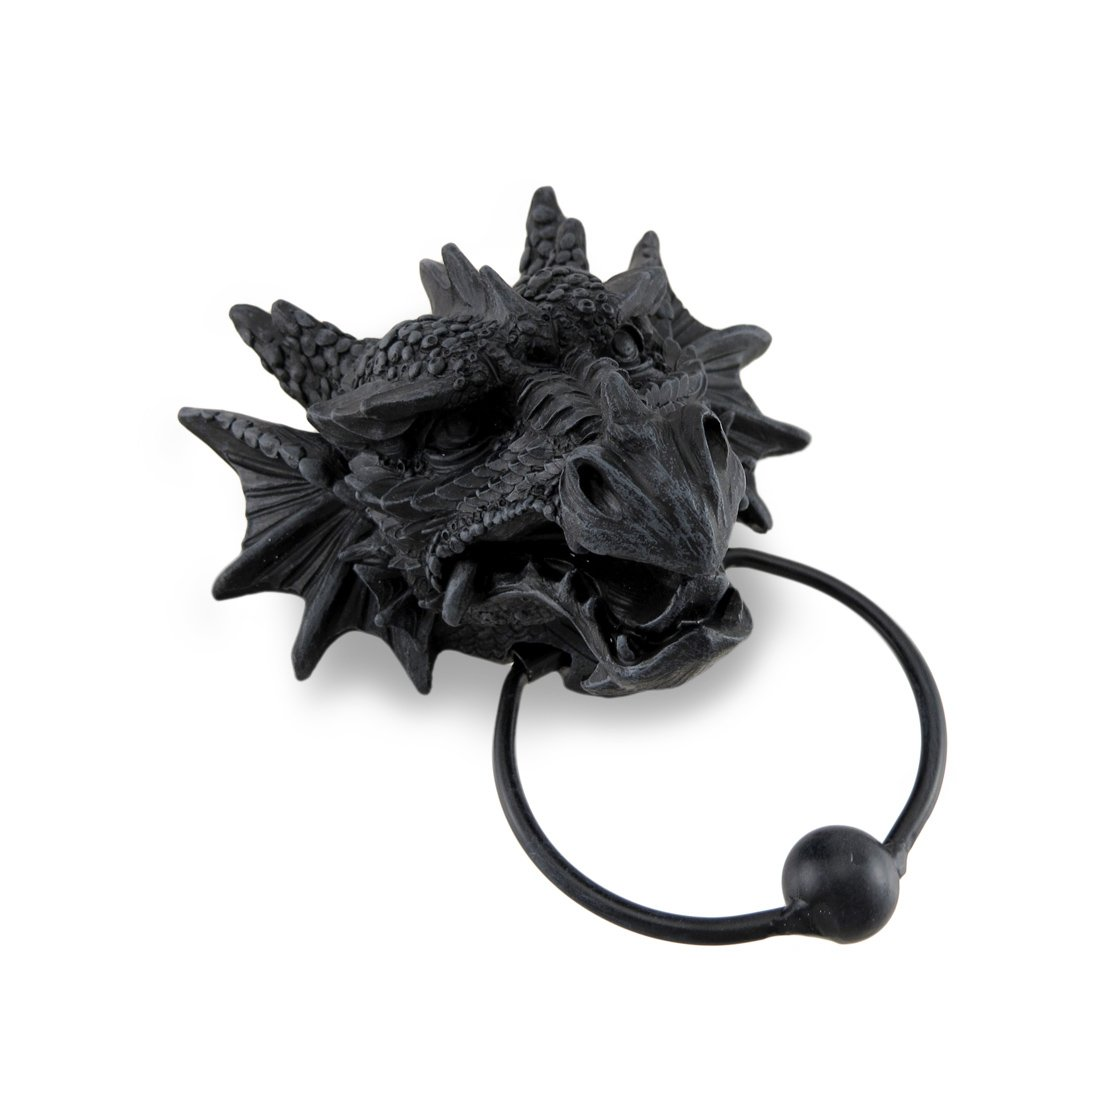 Dragon Bathroom Accessories Dragon Bathroom Decor Ideas With Mystic Accessories